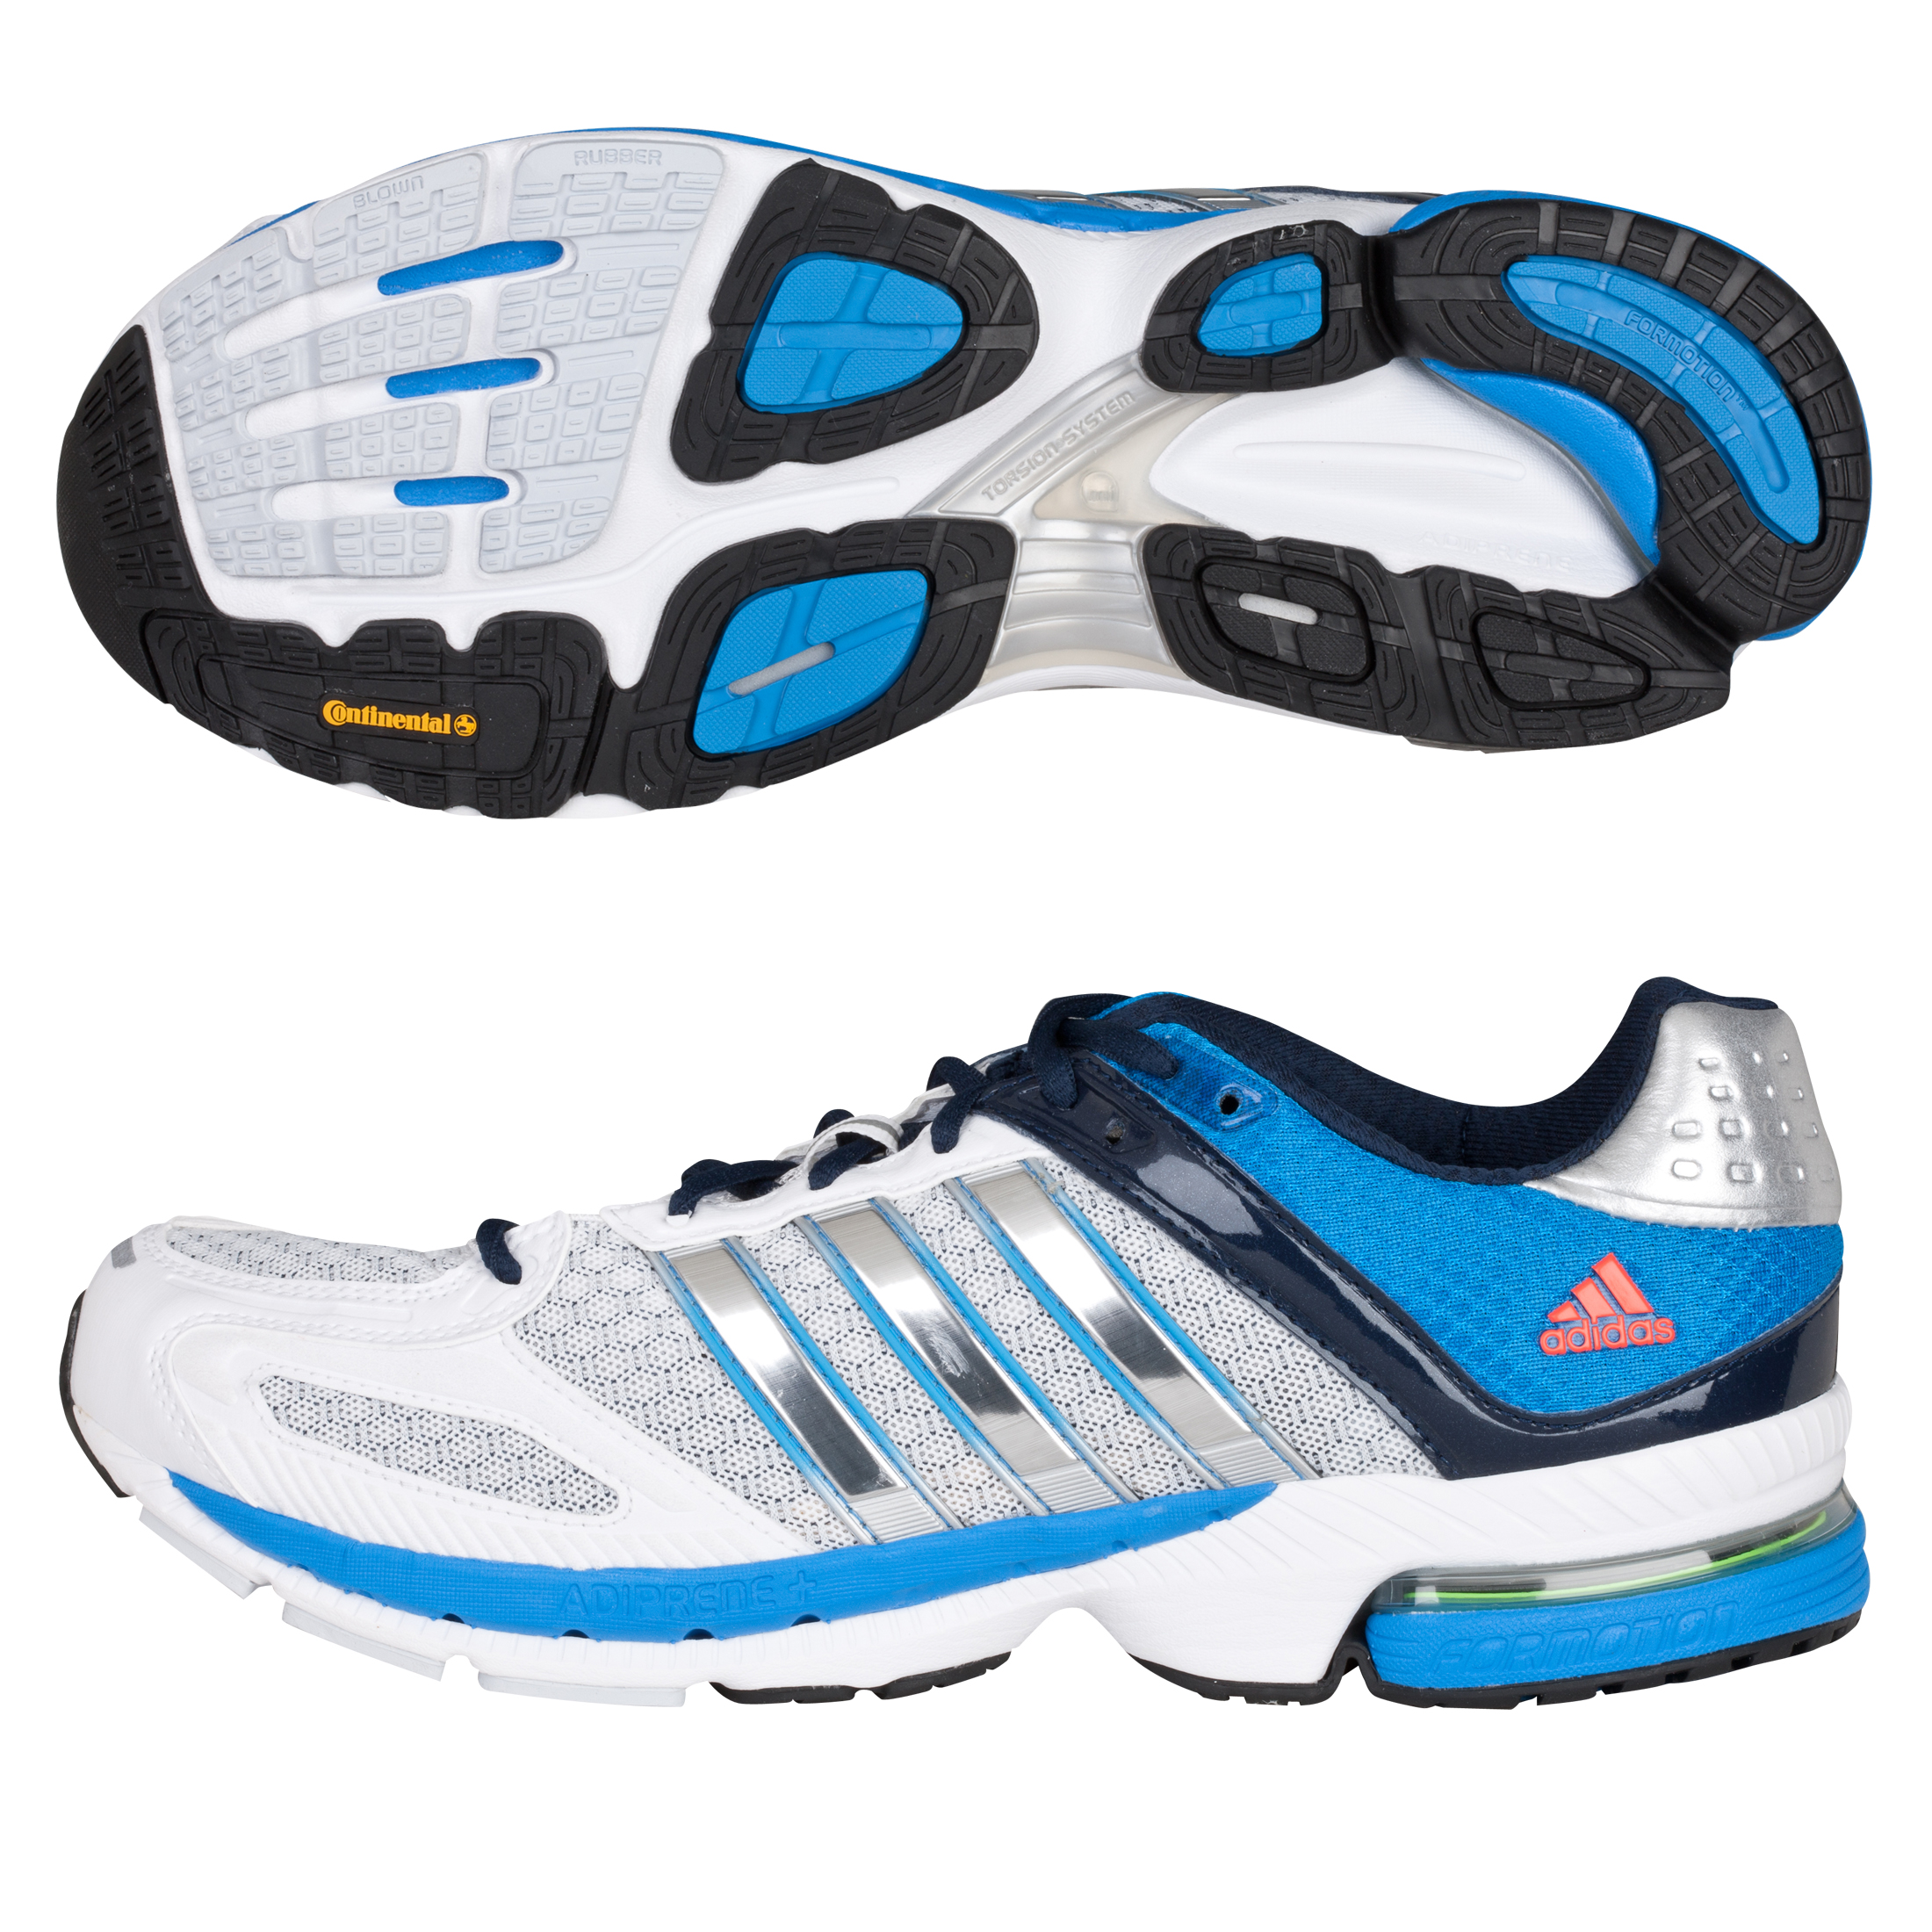 Adidas Snova Seq 5 Trainers - White/Metallic Silver/Bright Blue